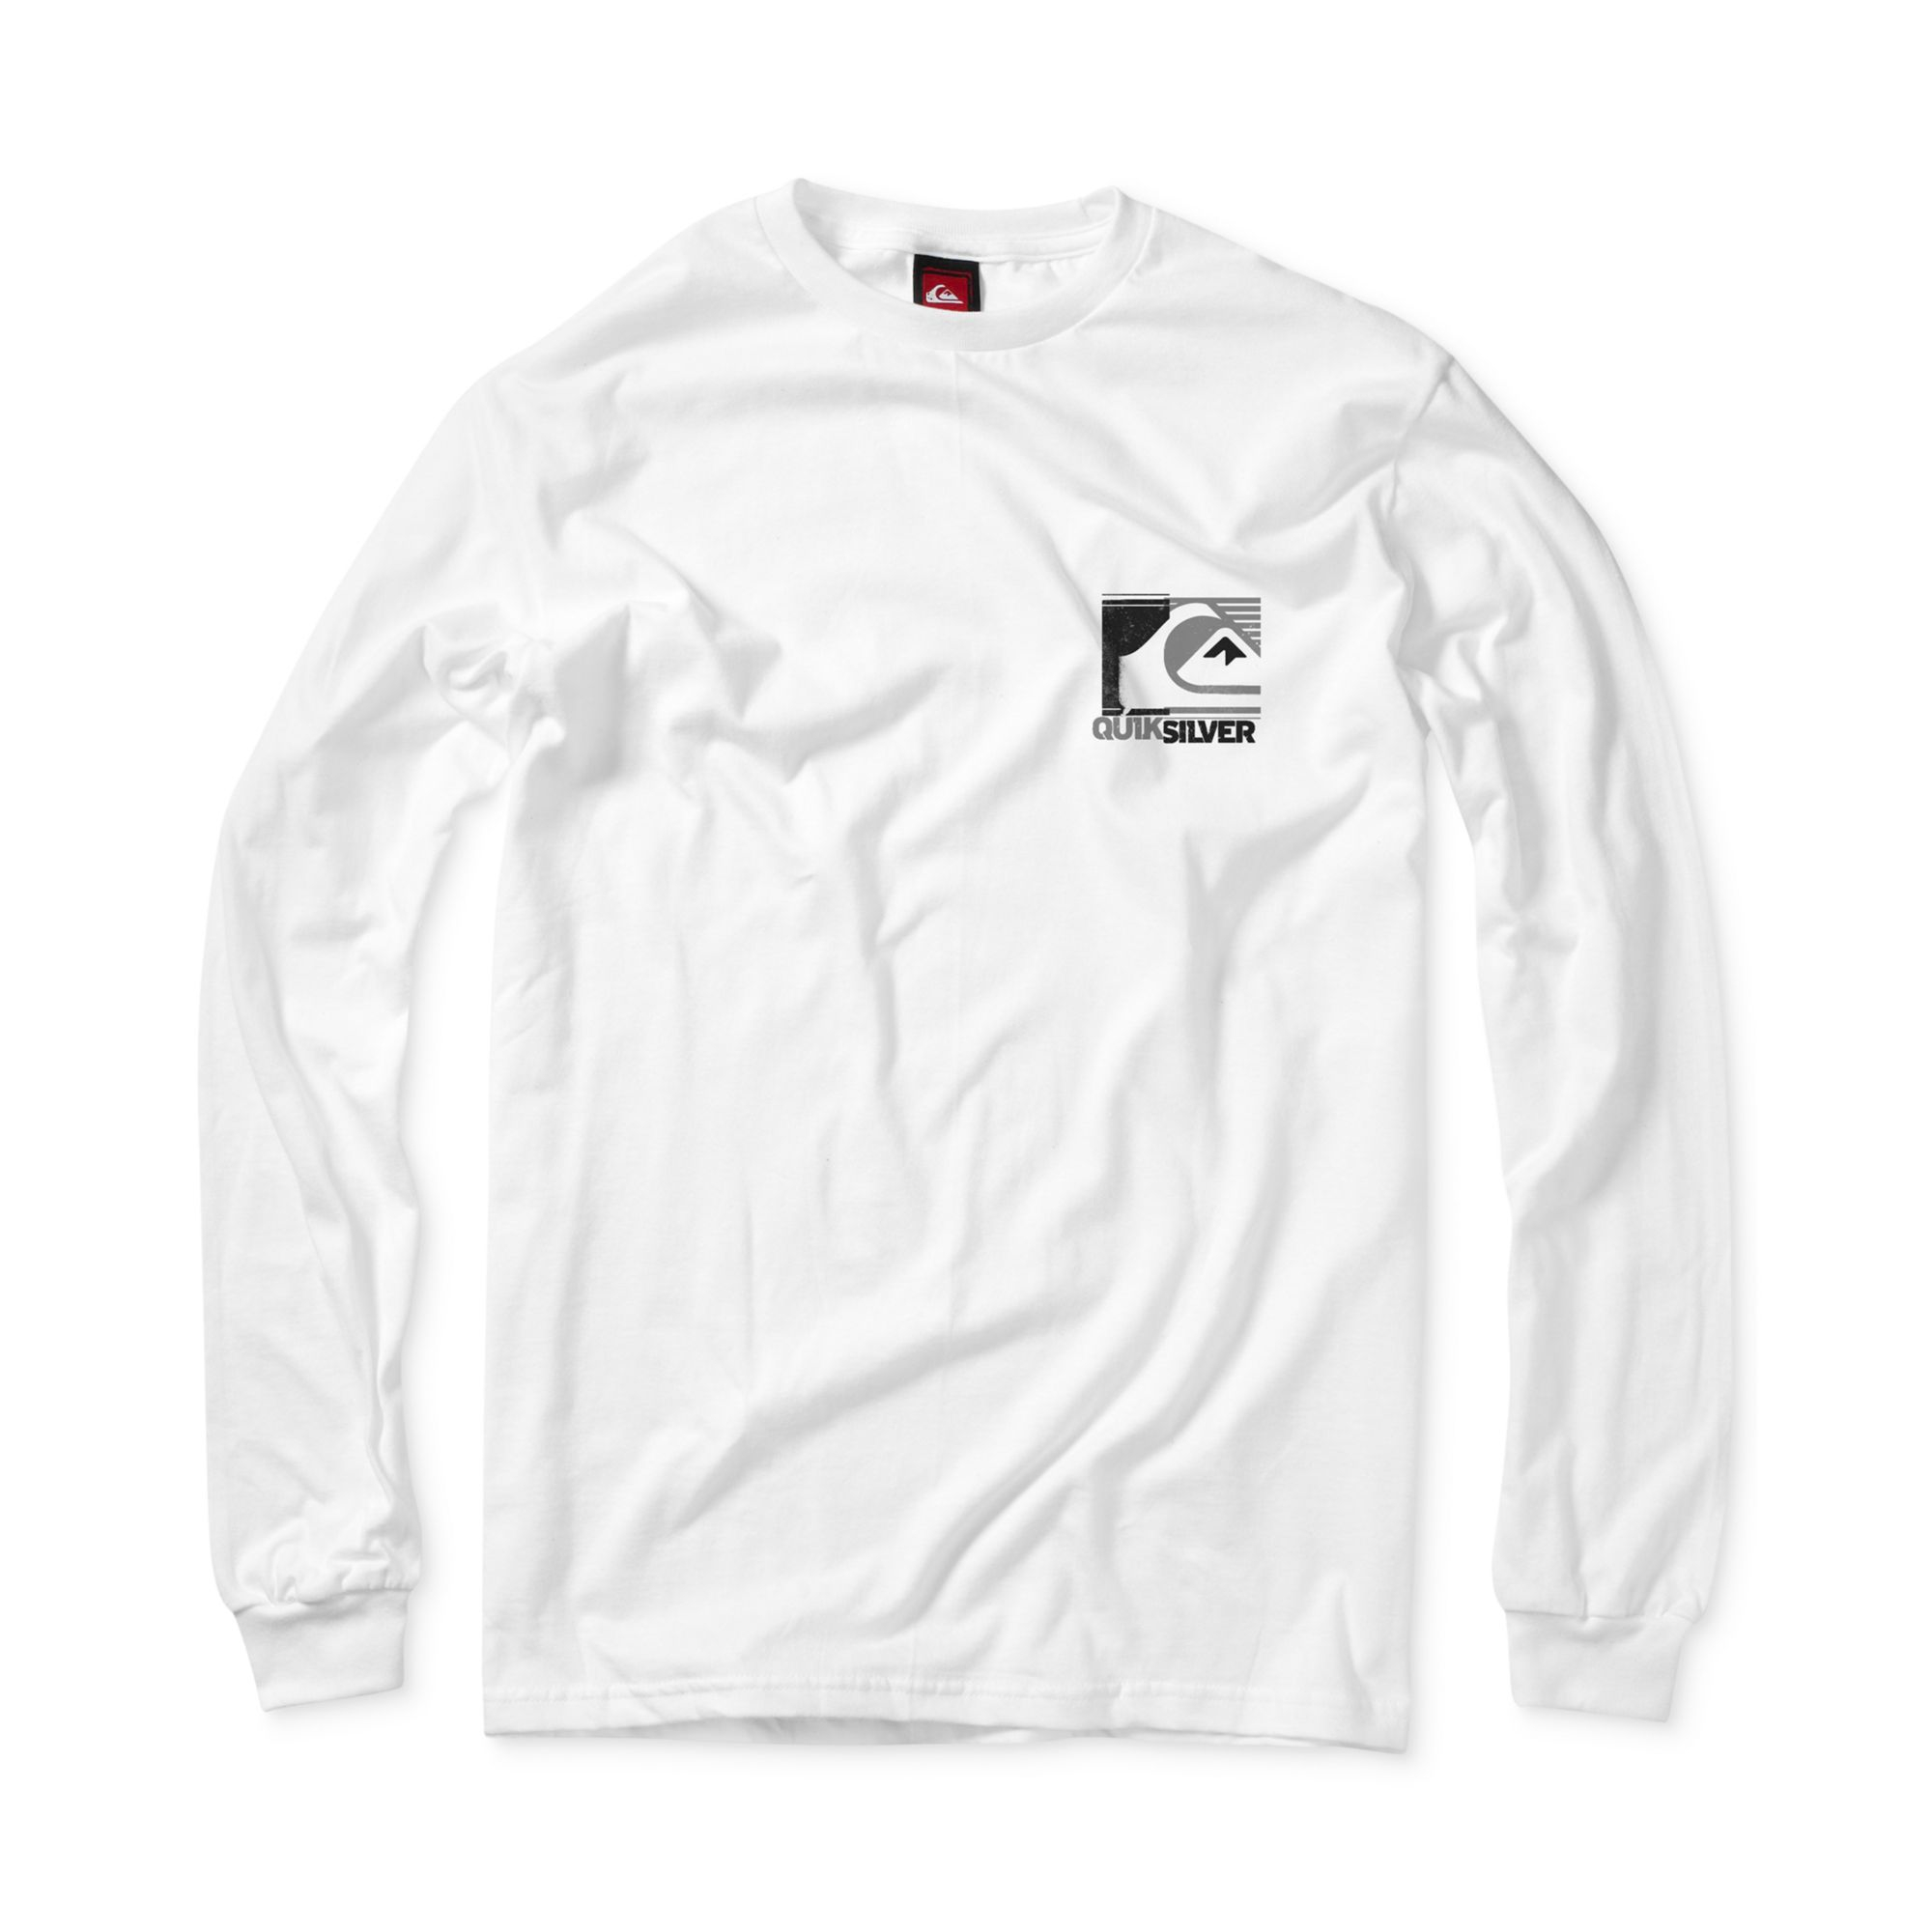 453ad26f2d5 Lyst - Quiksilver Radiation Long Sleeve Graphic T-Shirt in White for Men